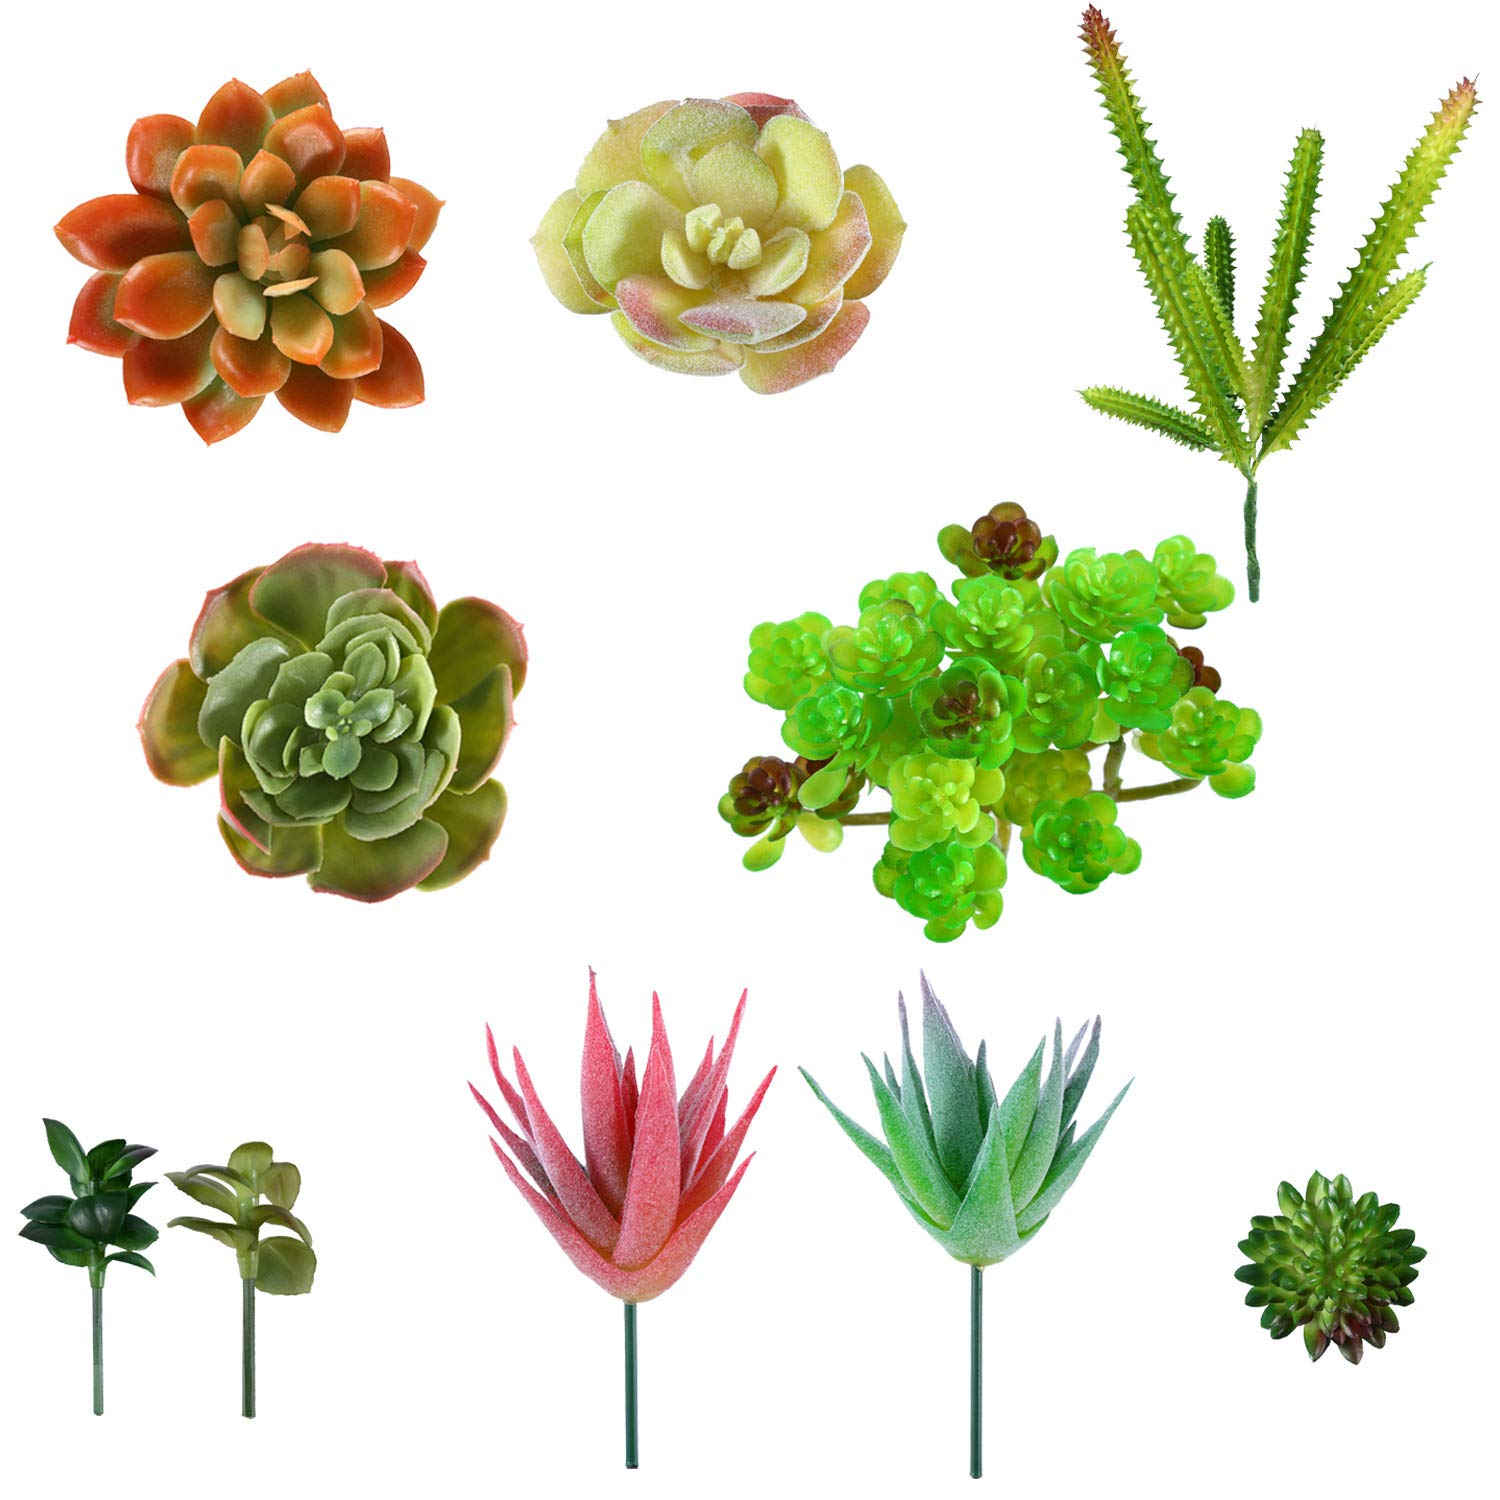 Beaspire Artificial Fake Succulent Plants 9 PCS Fake Plants Unpotted Faux Succulent Assorted for Indoor or Outdoor Decor, Office and Garden Arrangements Decoration